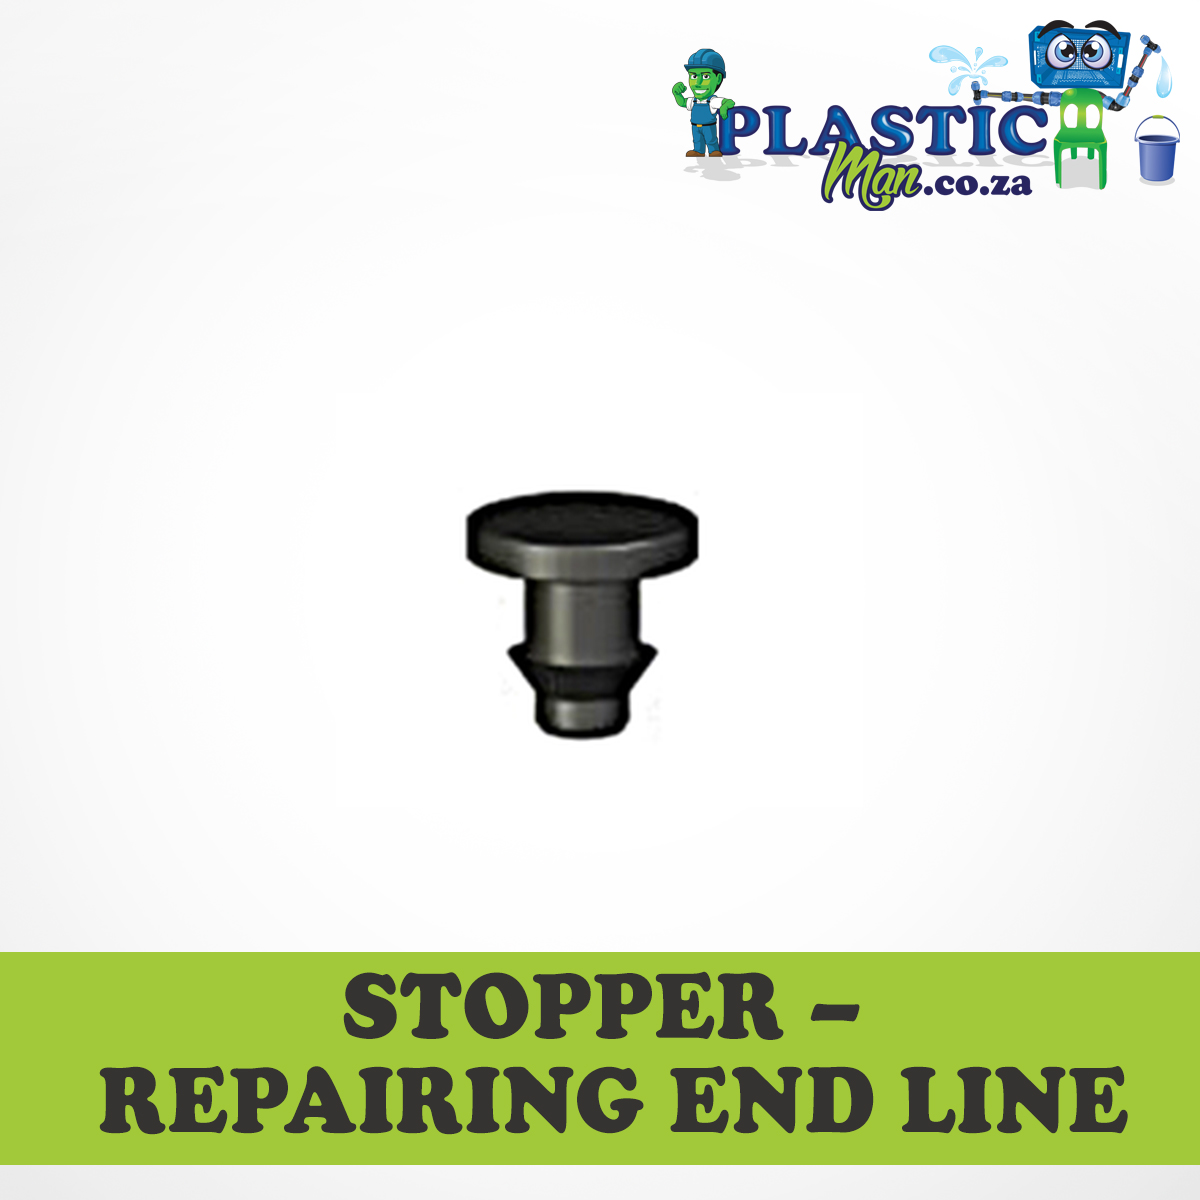 Repairing end line Stopper